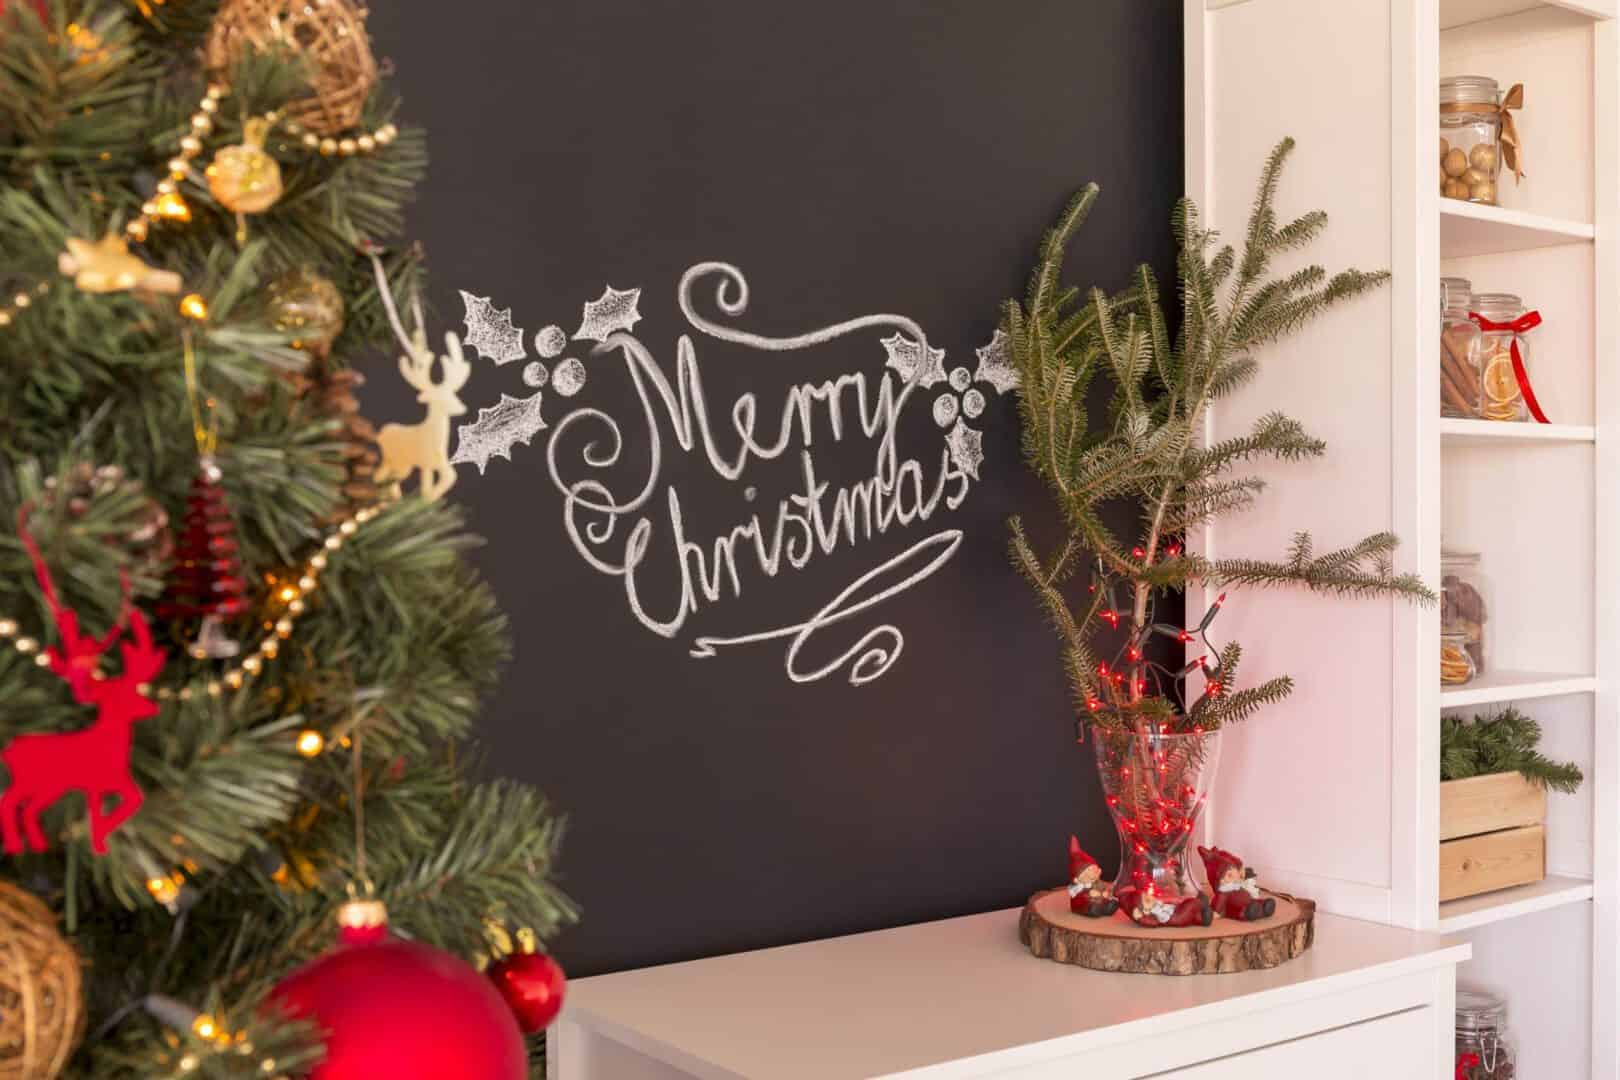 Merry christmas sign n a blackboard above commode with decorations